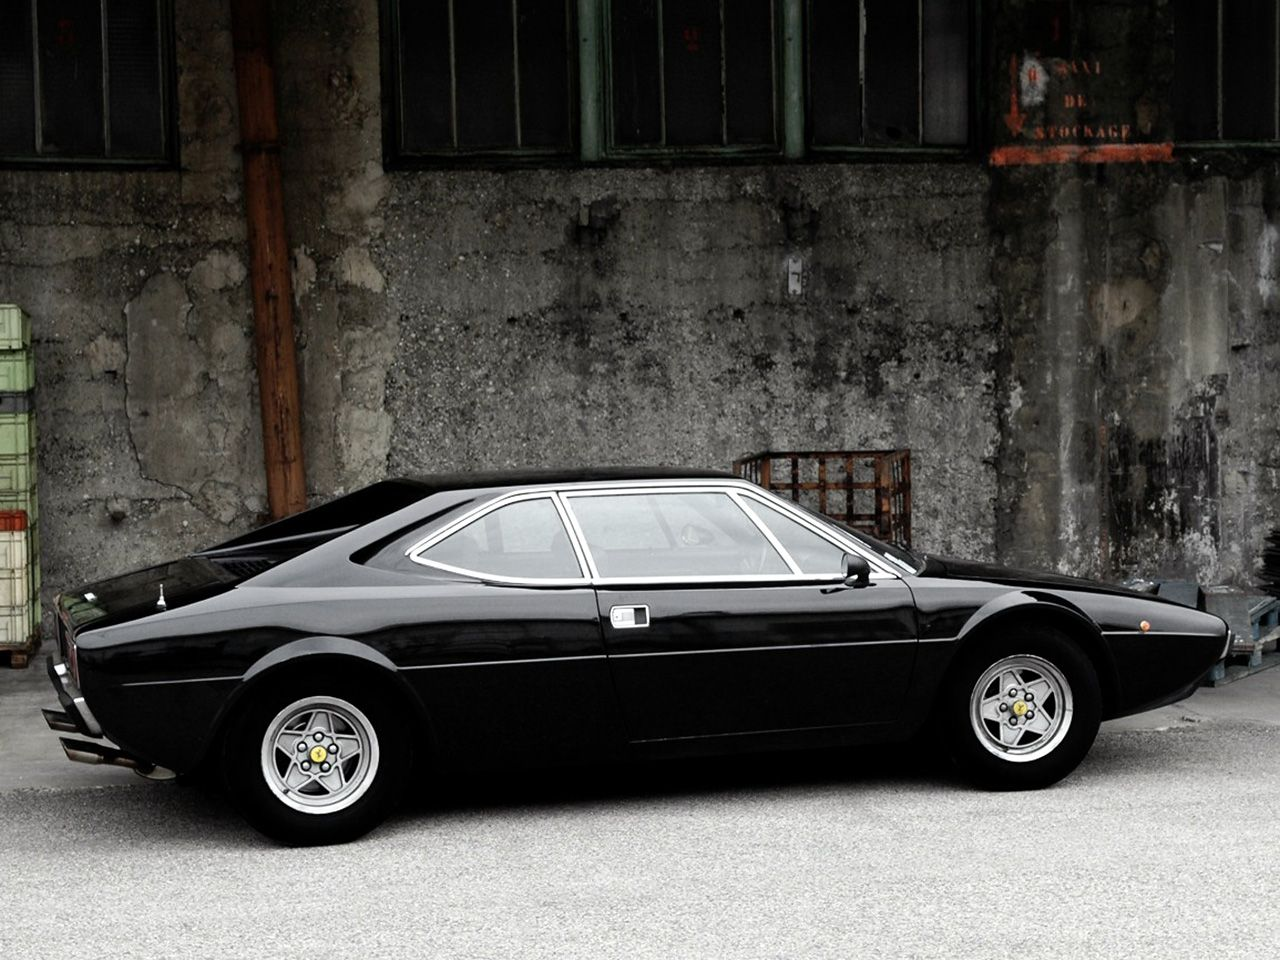 Black Ferrari Dino 308 Not Really A Ferrari So It Can Go On